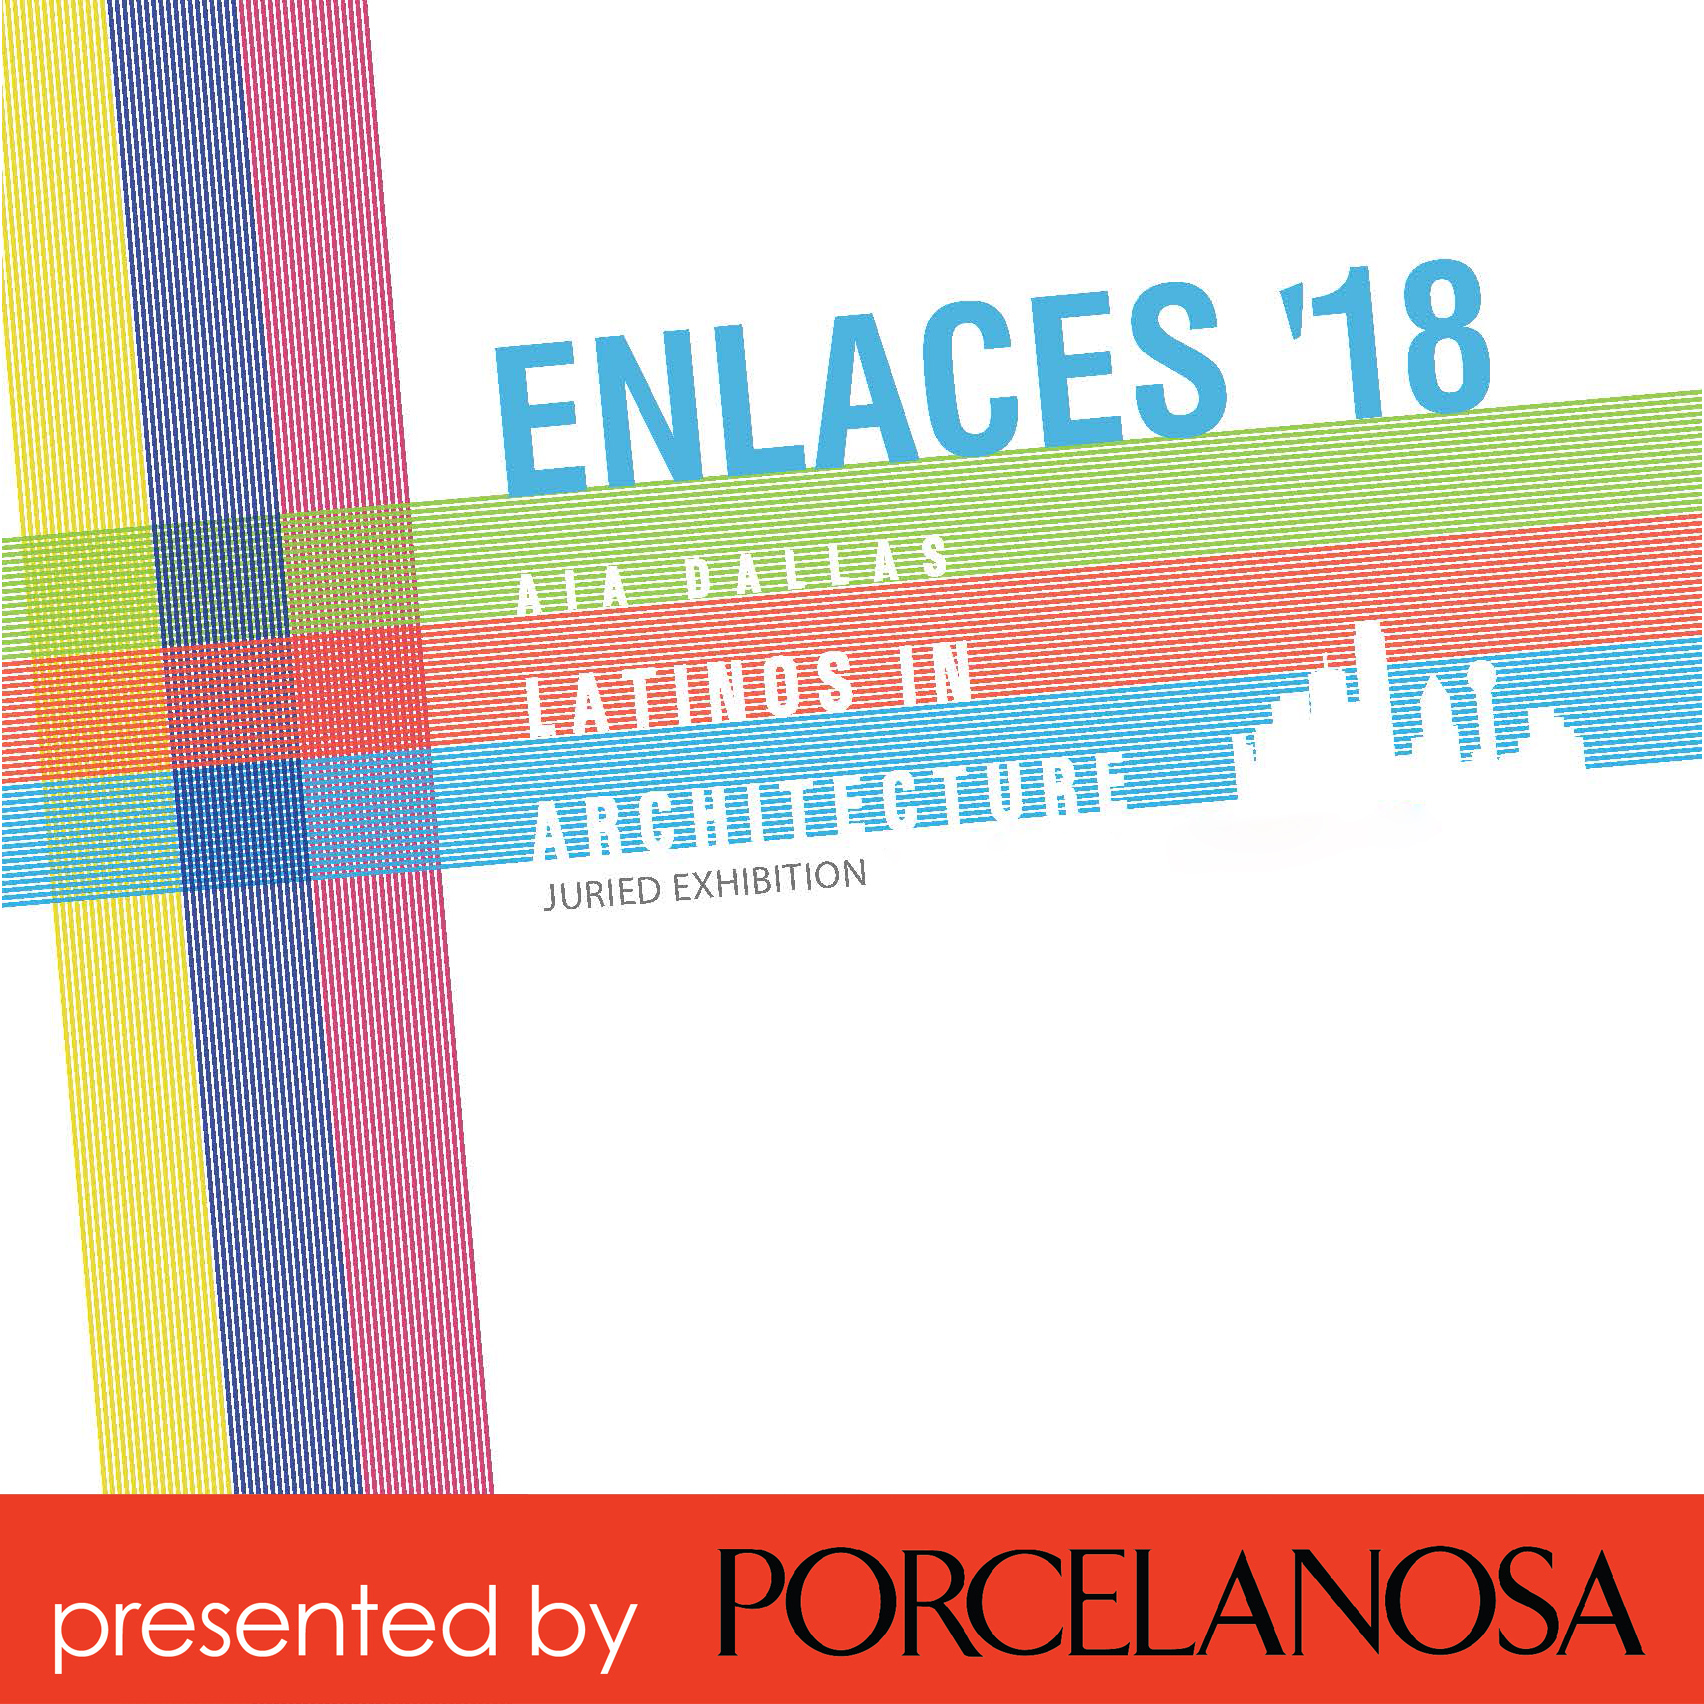 ENLACES Reception 2018